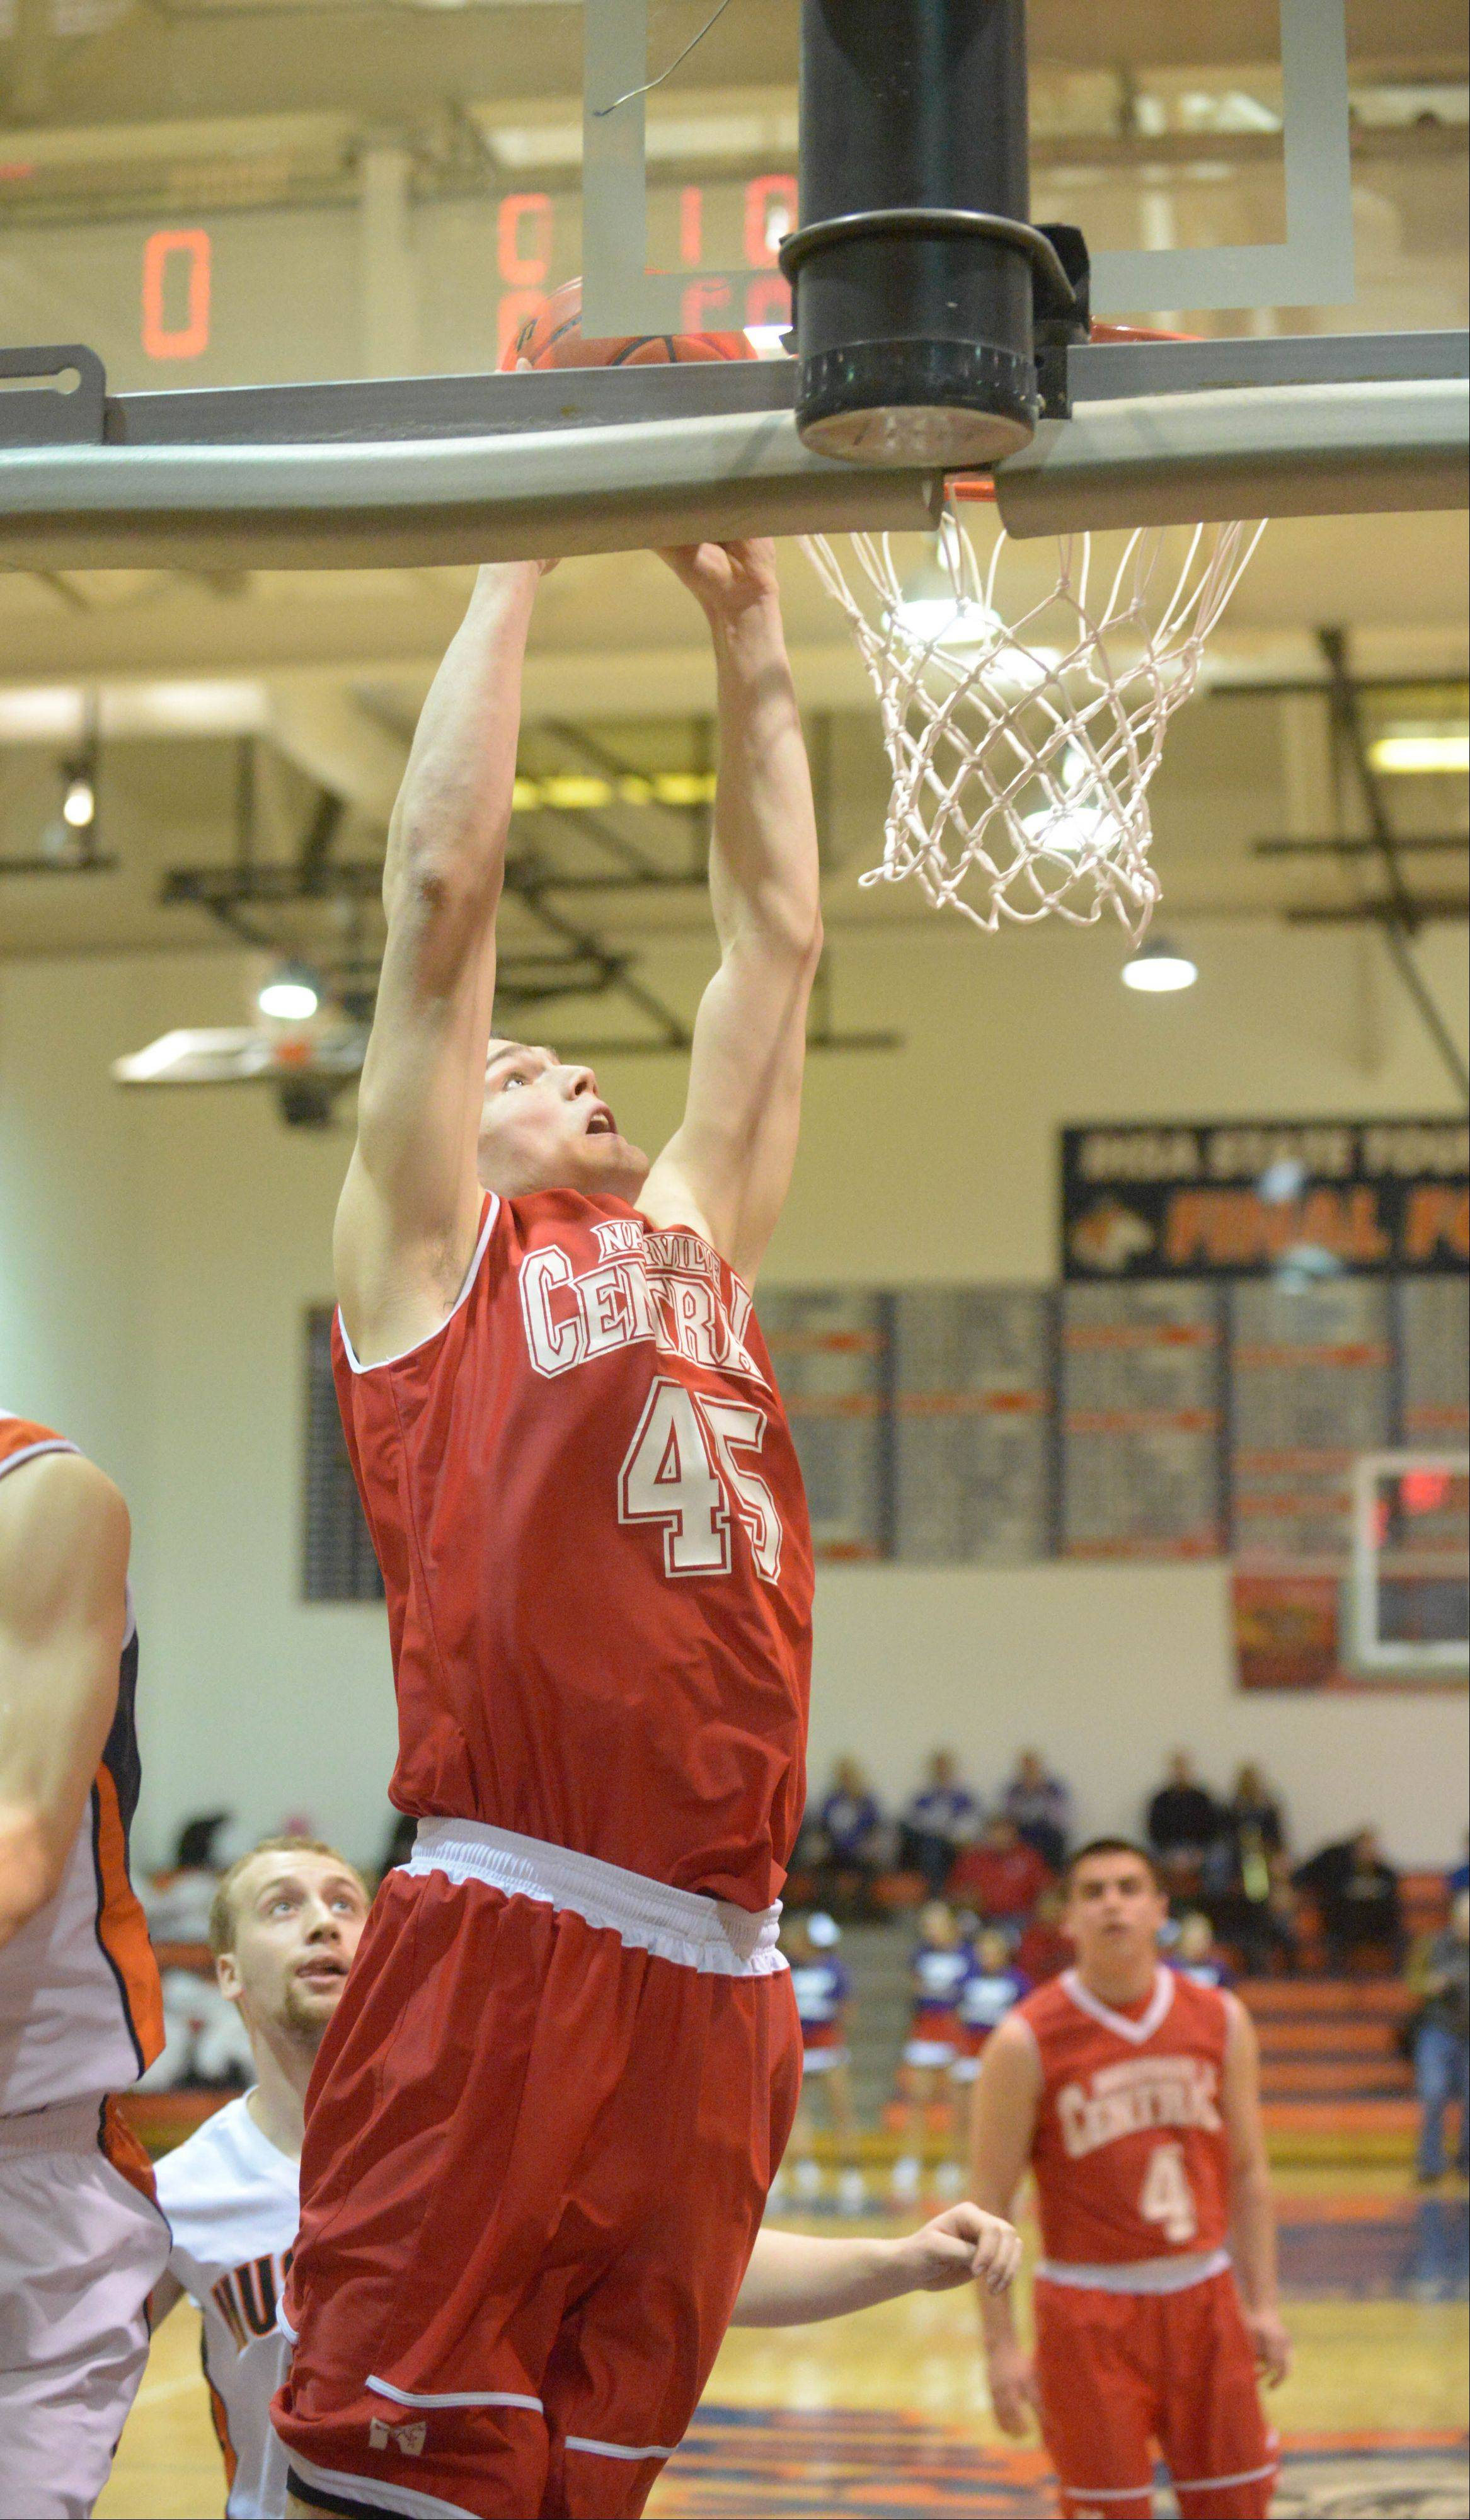 Paul Michna/pmichna@dailyherald.com Nick Czarnowski of Naperville Central goes up for the dunk during the Naperville Central at Naperville North boys basketball game Friday.